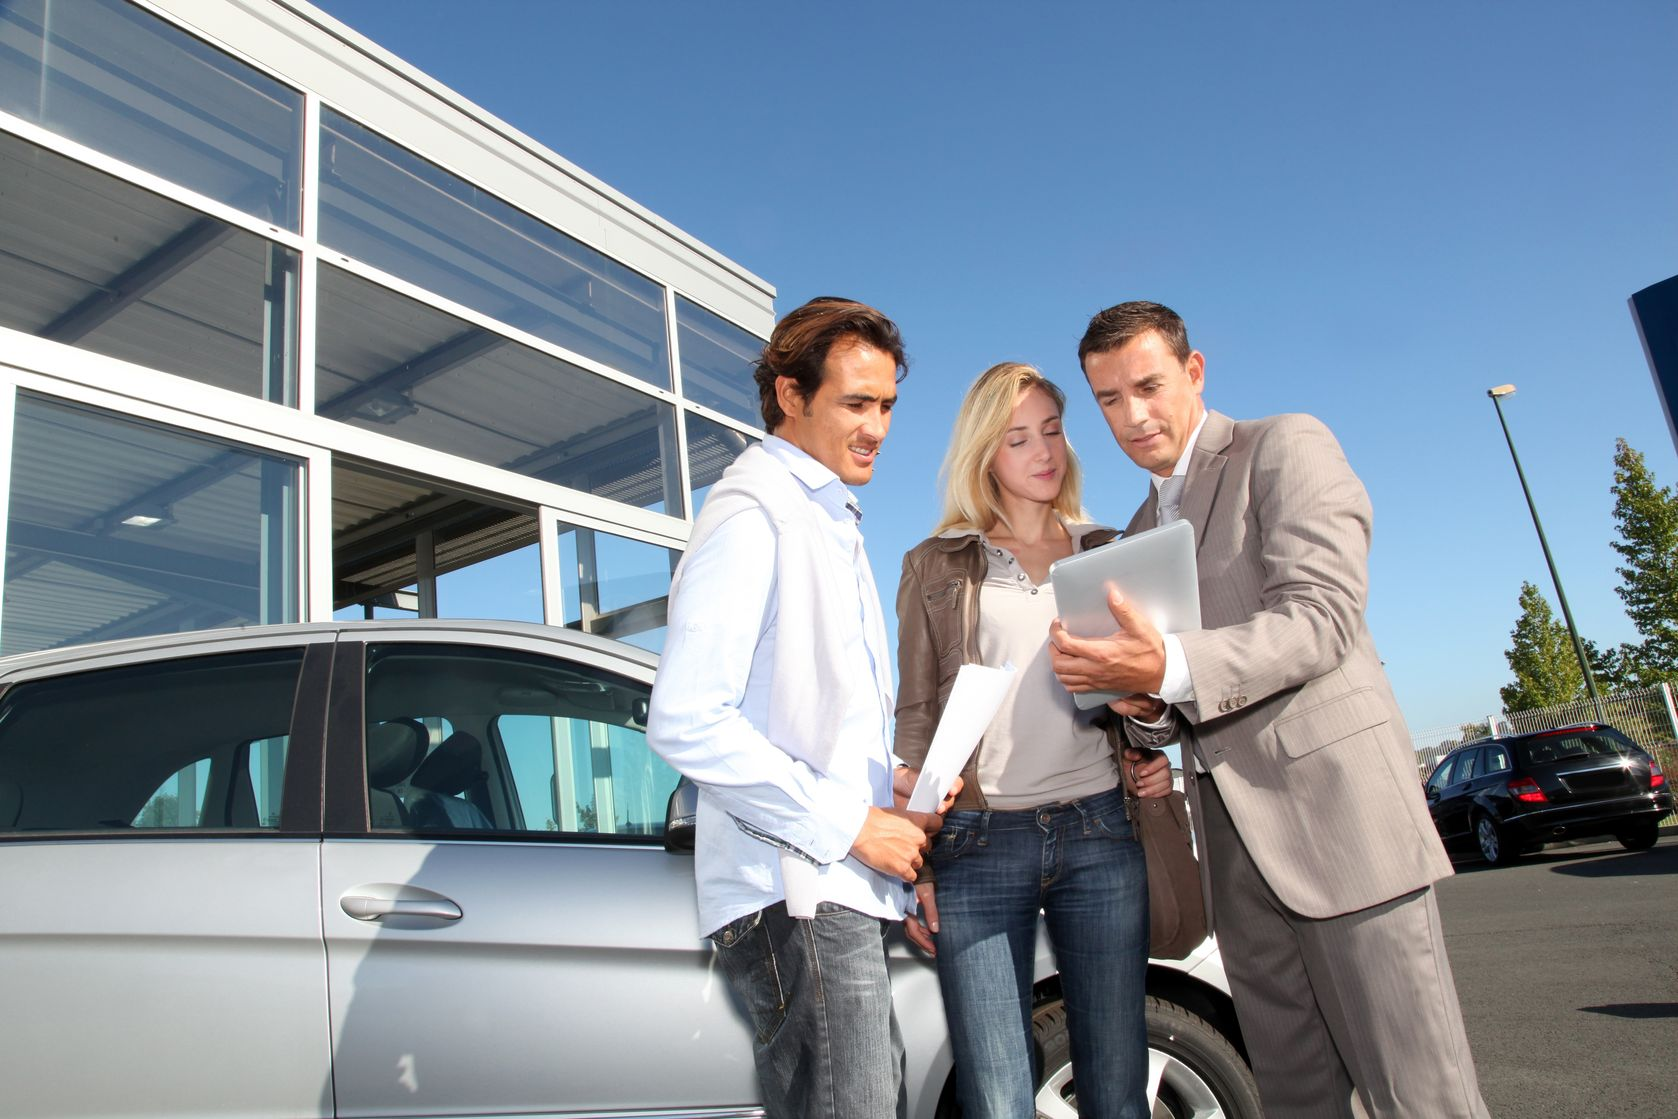 Park City, Heber City, Auto Dealers Insurance